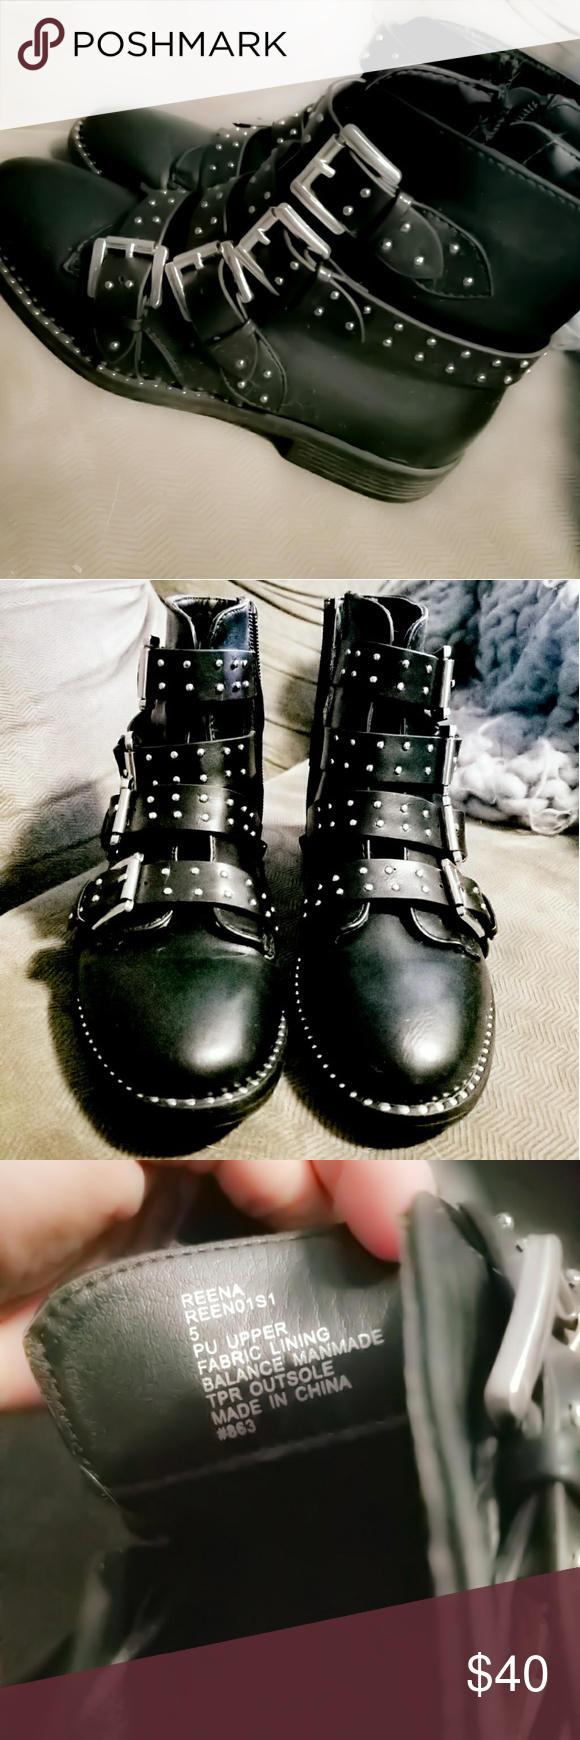 c4a65ea5654 Steve Madden Castro Reena Black Buckle Studs Boots Size 5. Tried on ...